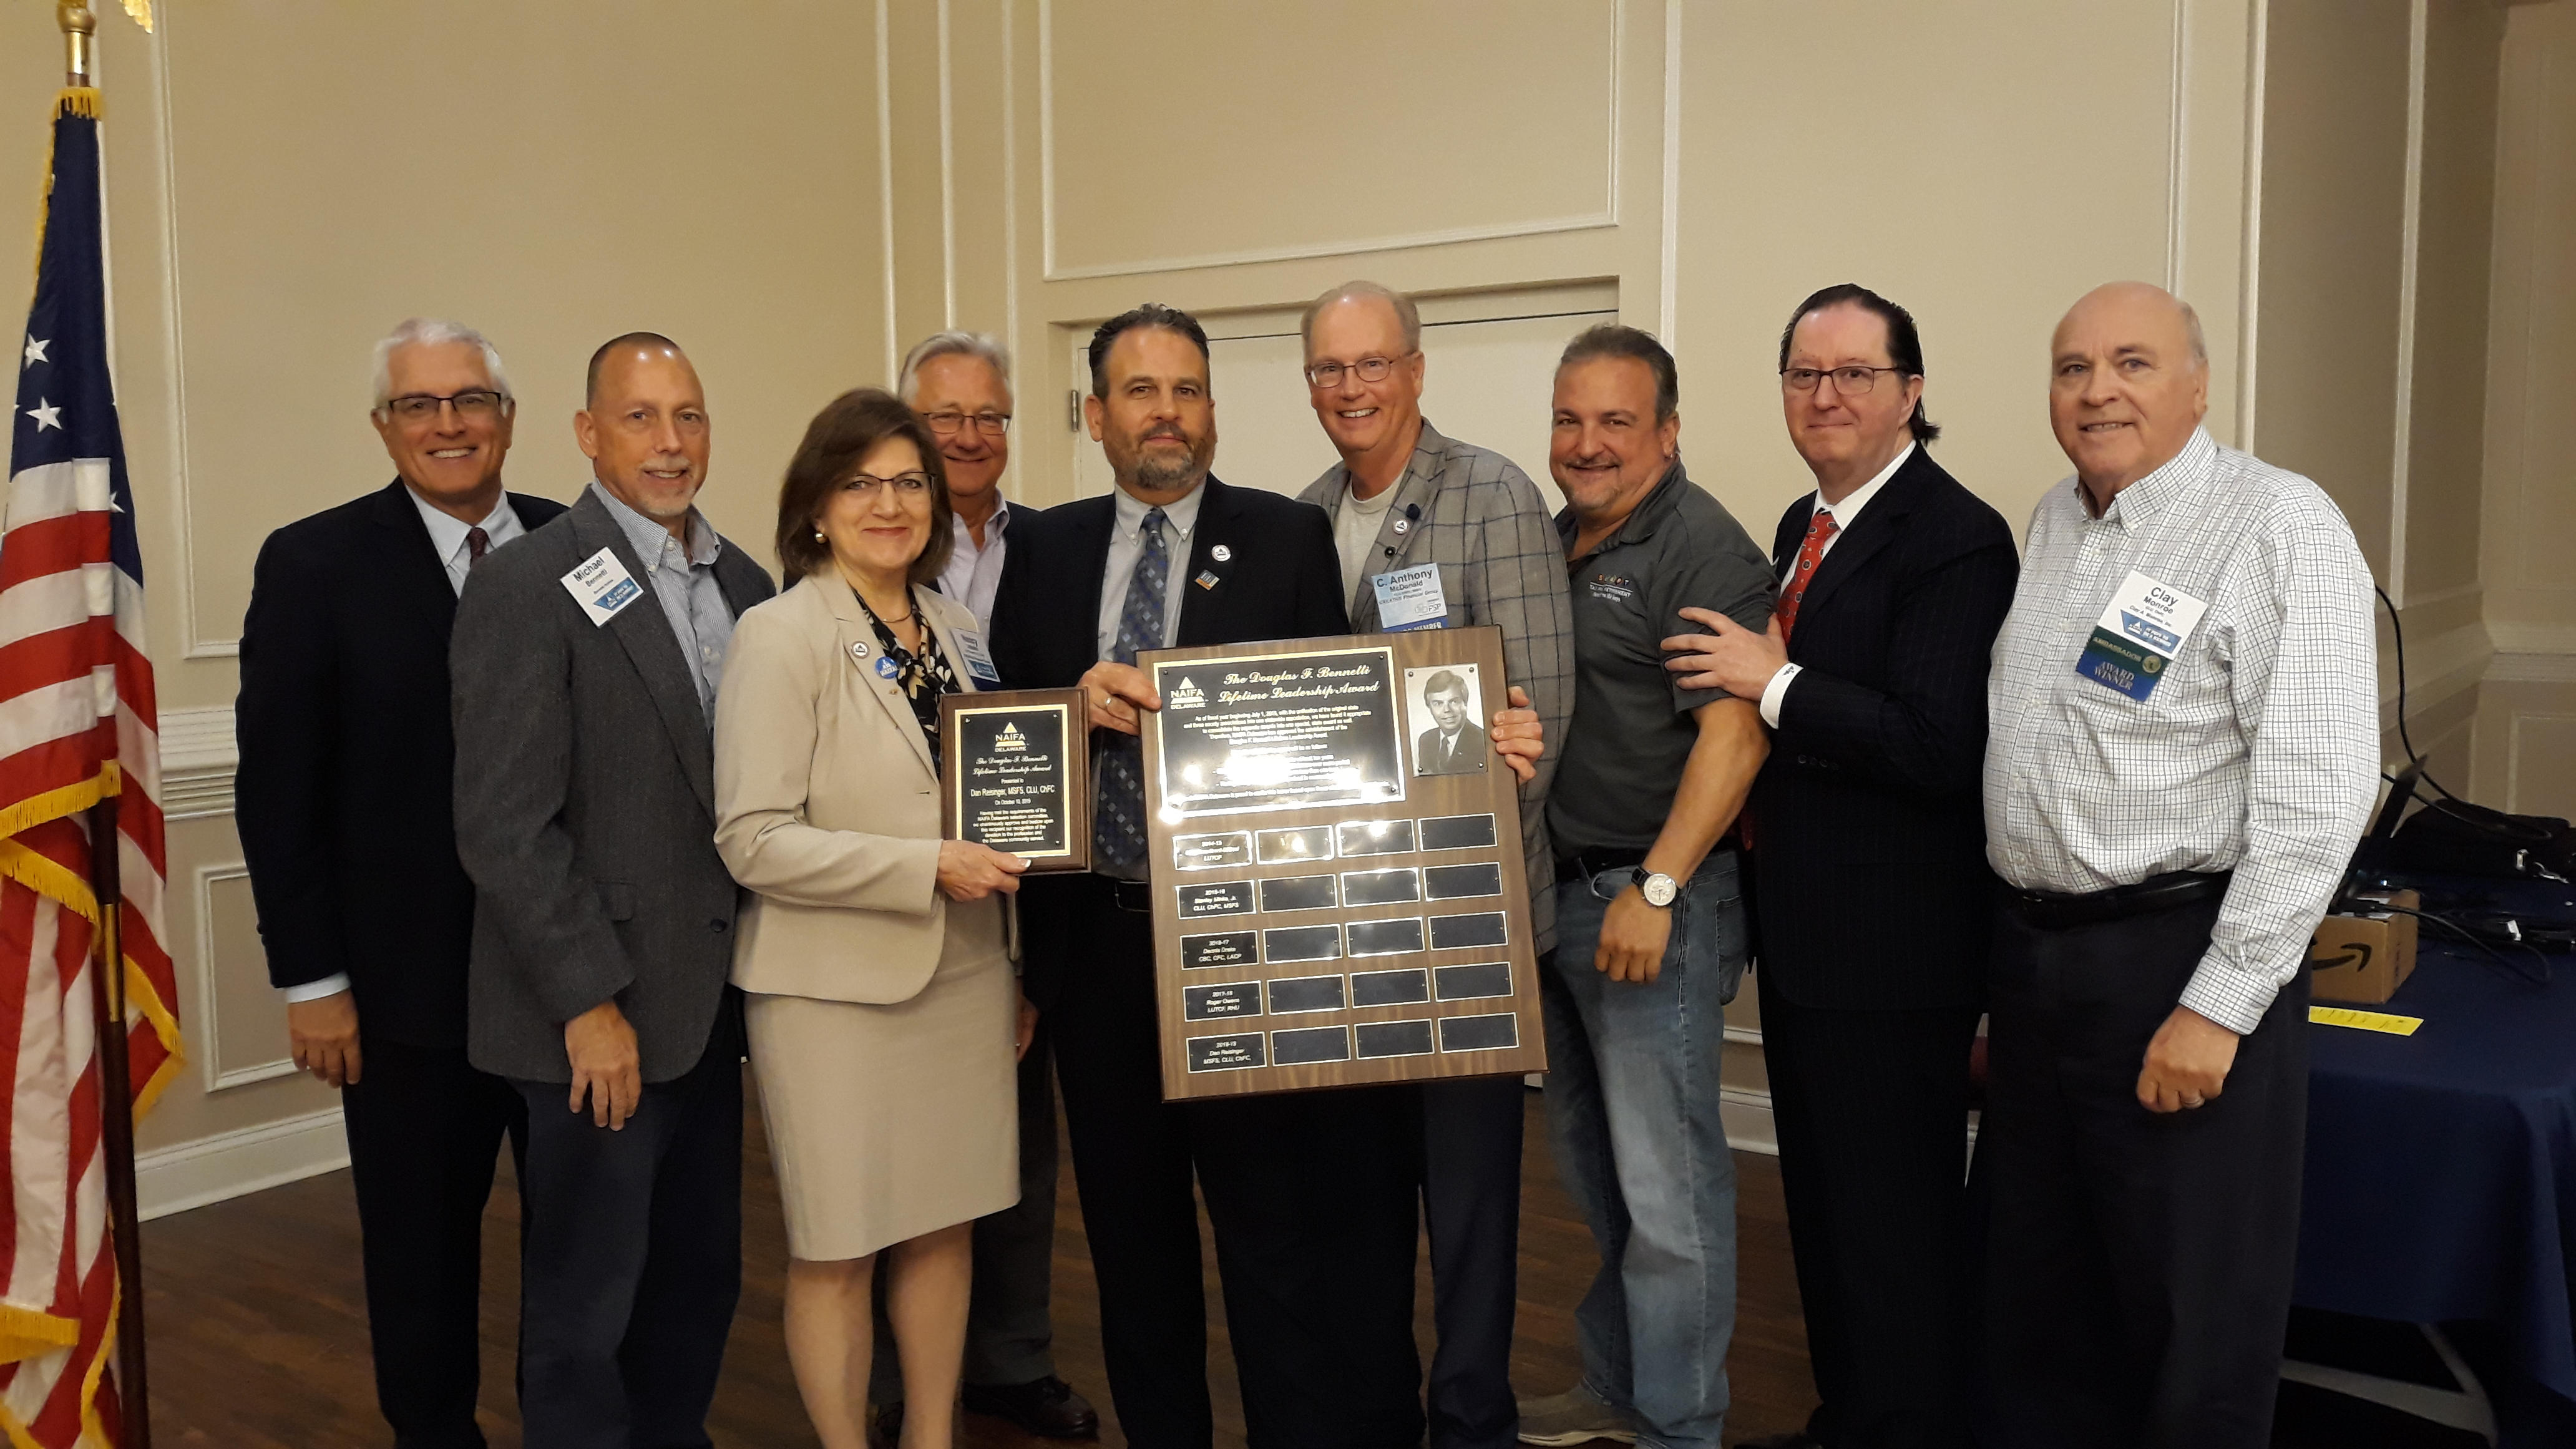 Dan Reisinger is presented the Bennetti Award. Taken with previous recipients in attendance.